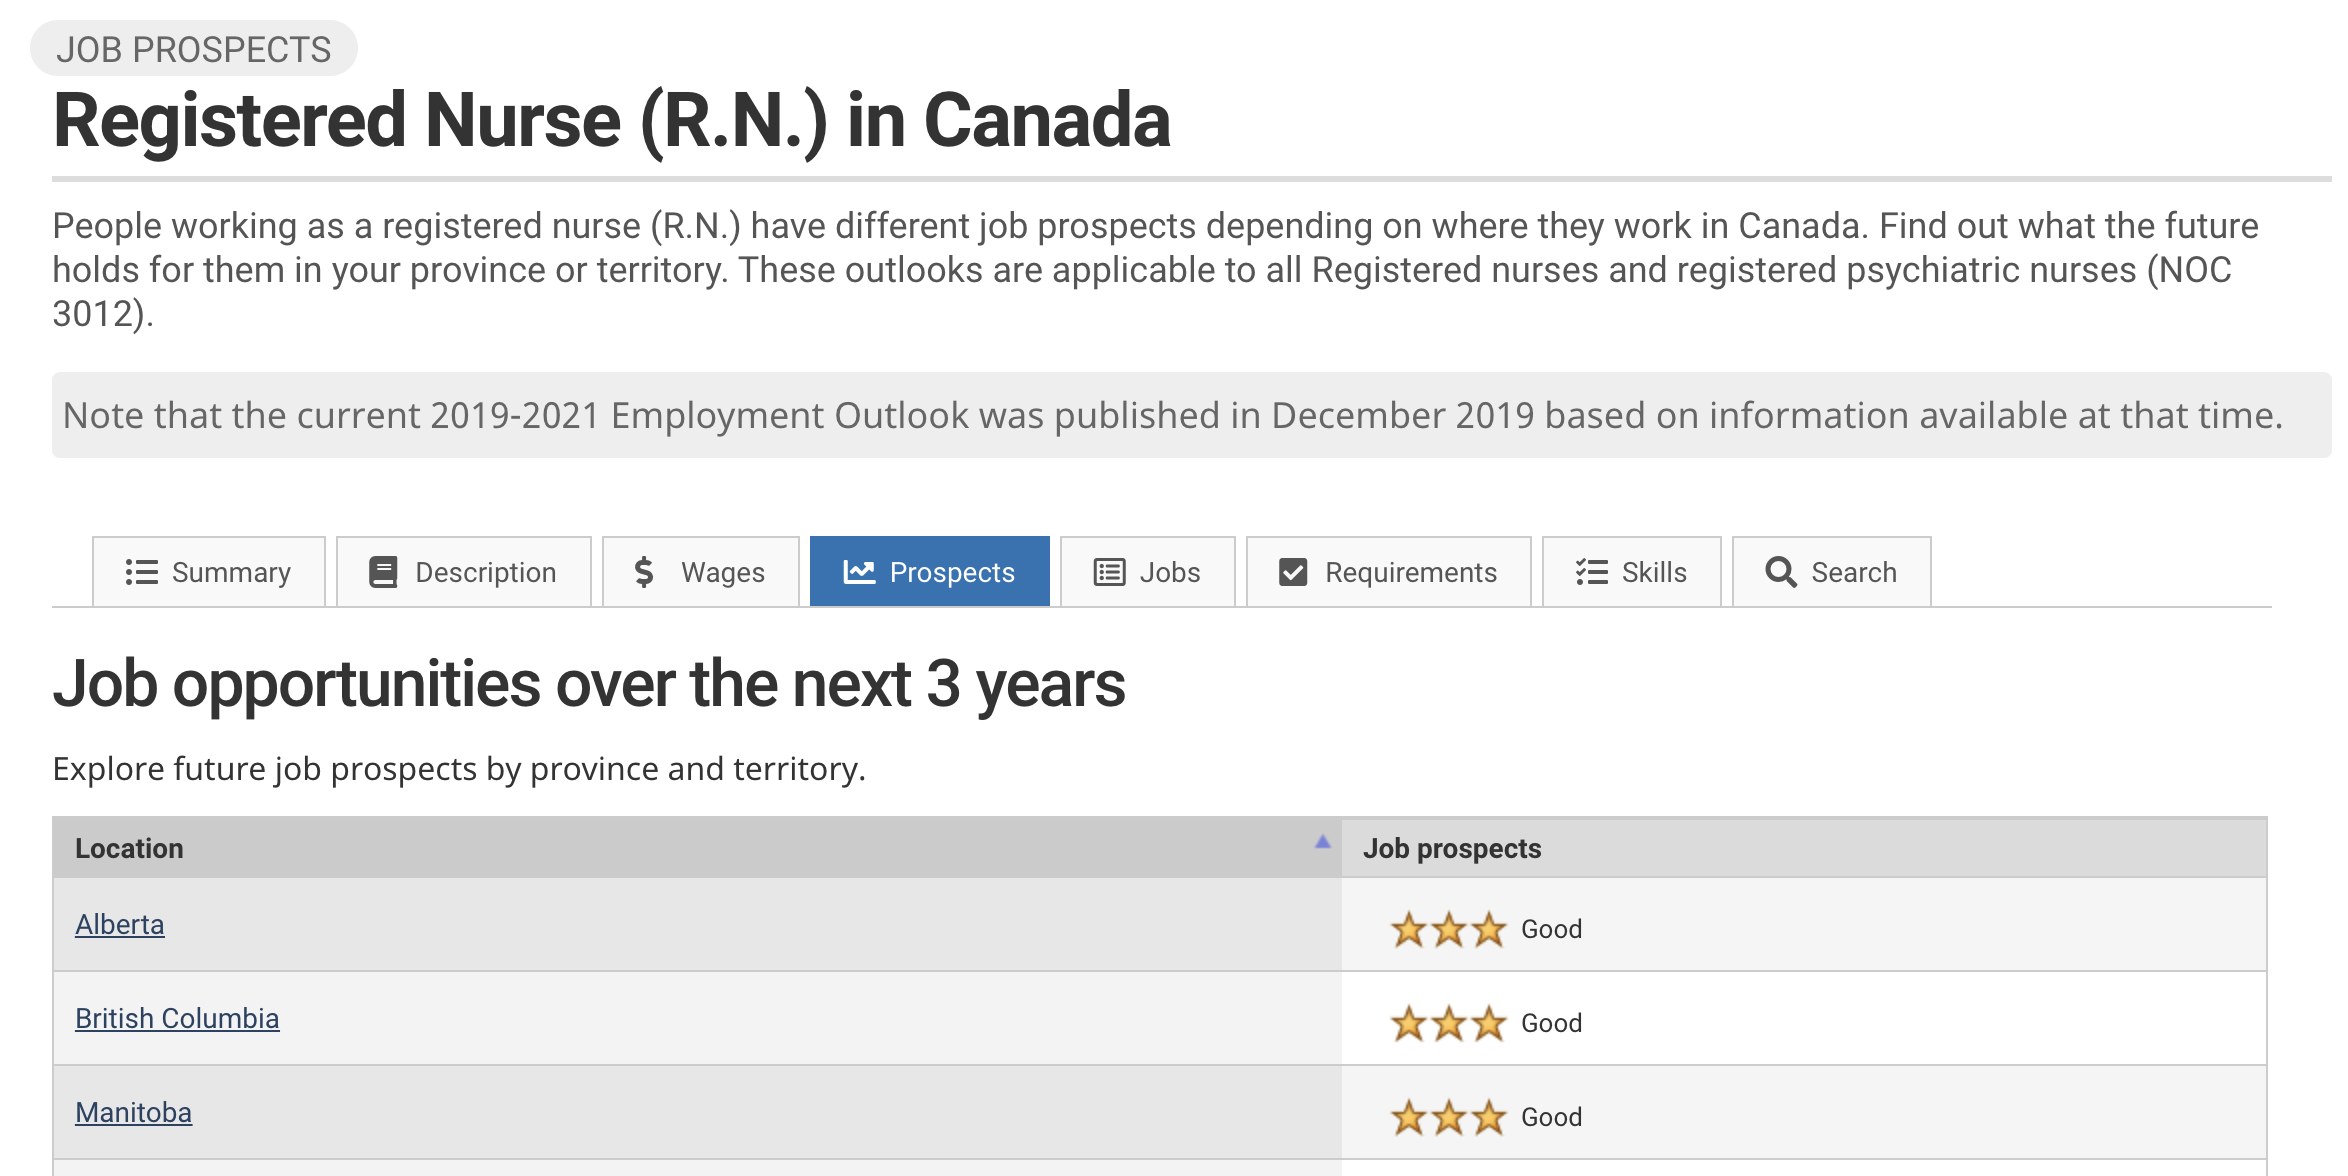 Image showing StatCan job prospects and trends for a Registered Nurse in Canada